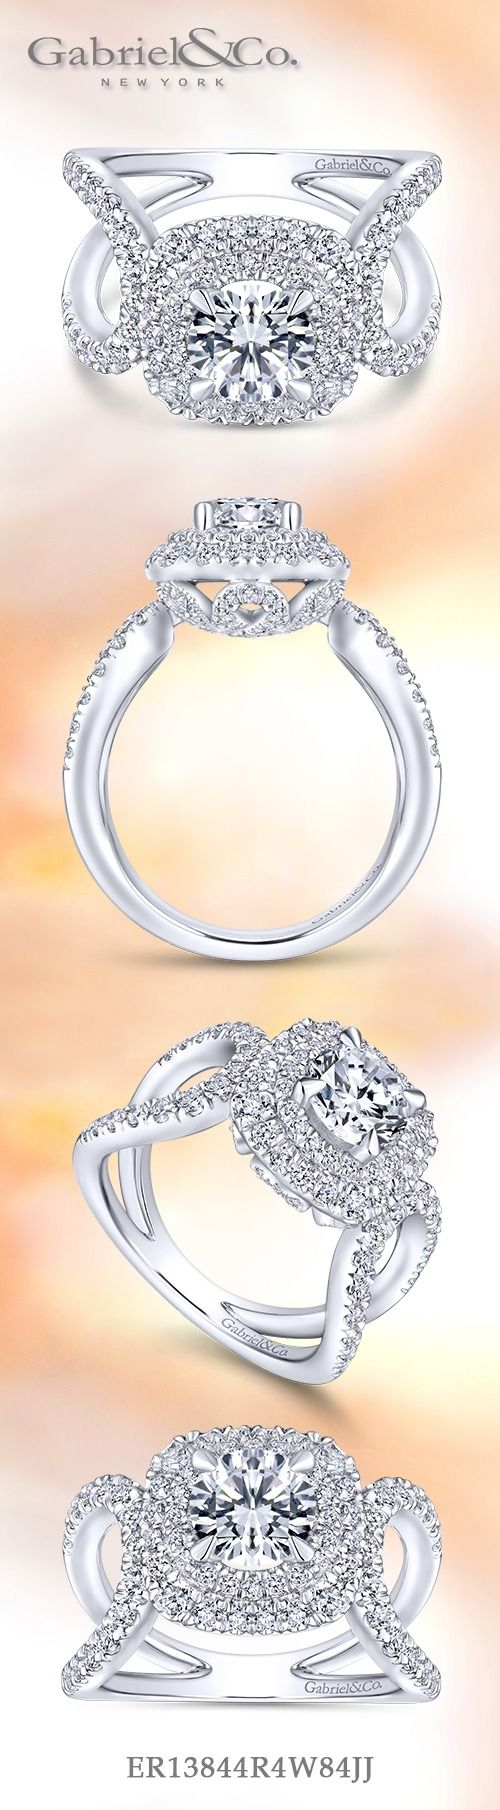 Gabriel & Co.-Voted #1 Most Preferred Fine Jewelry and Bridal Brand. 18k White Gold Round Double Halo  Engagement Ring